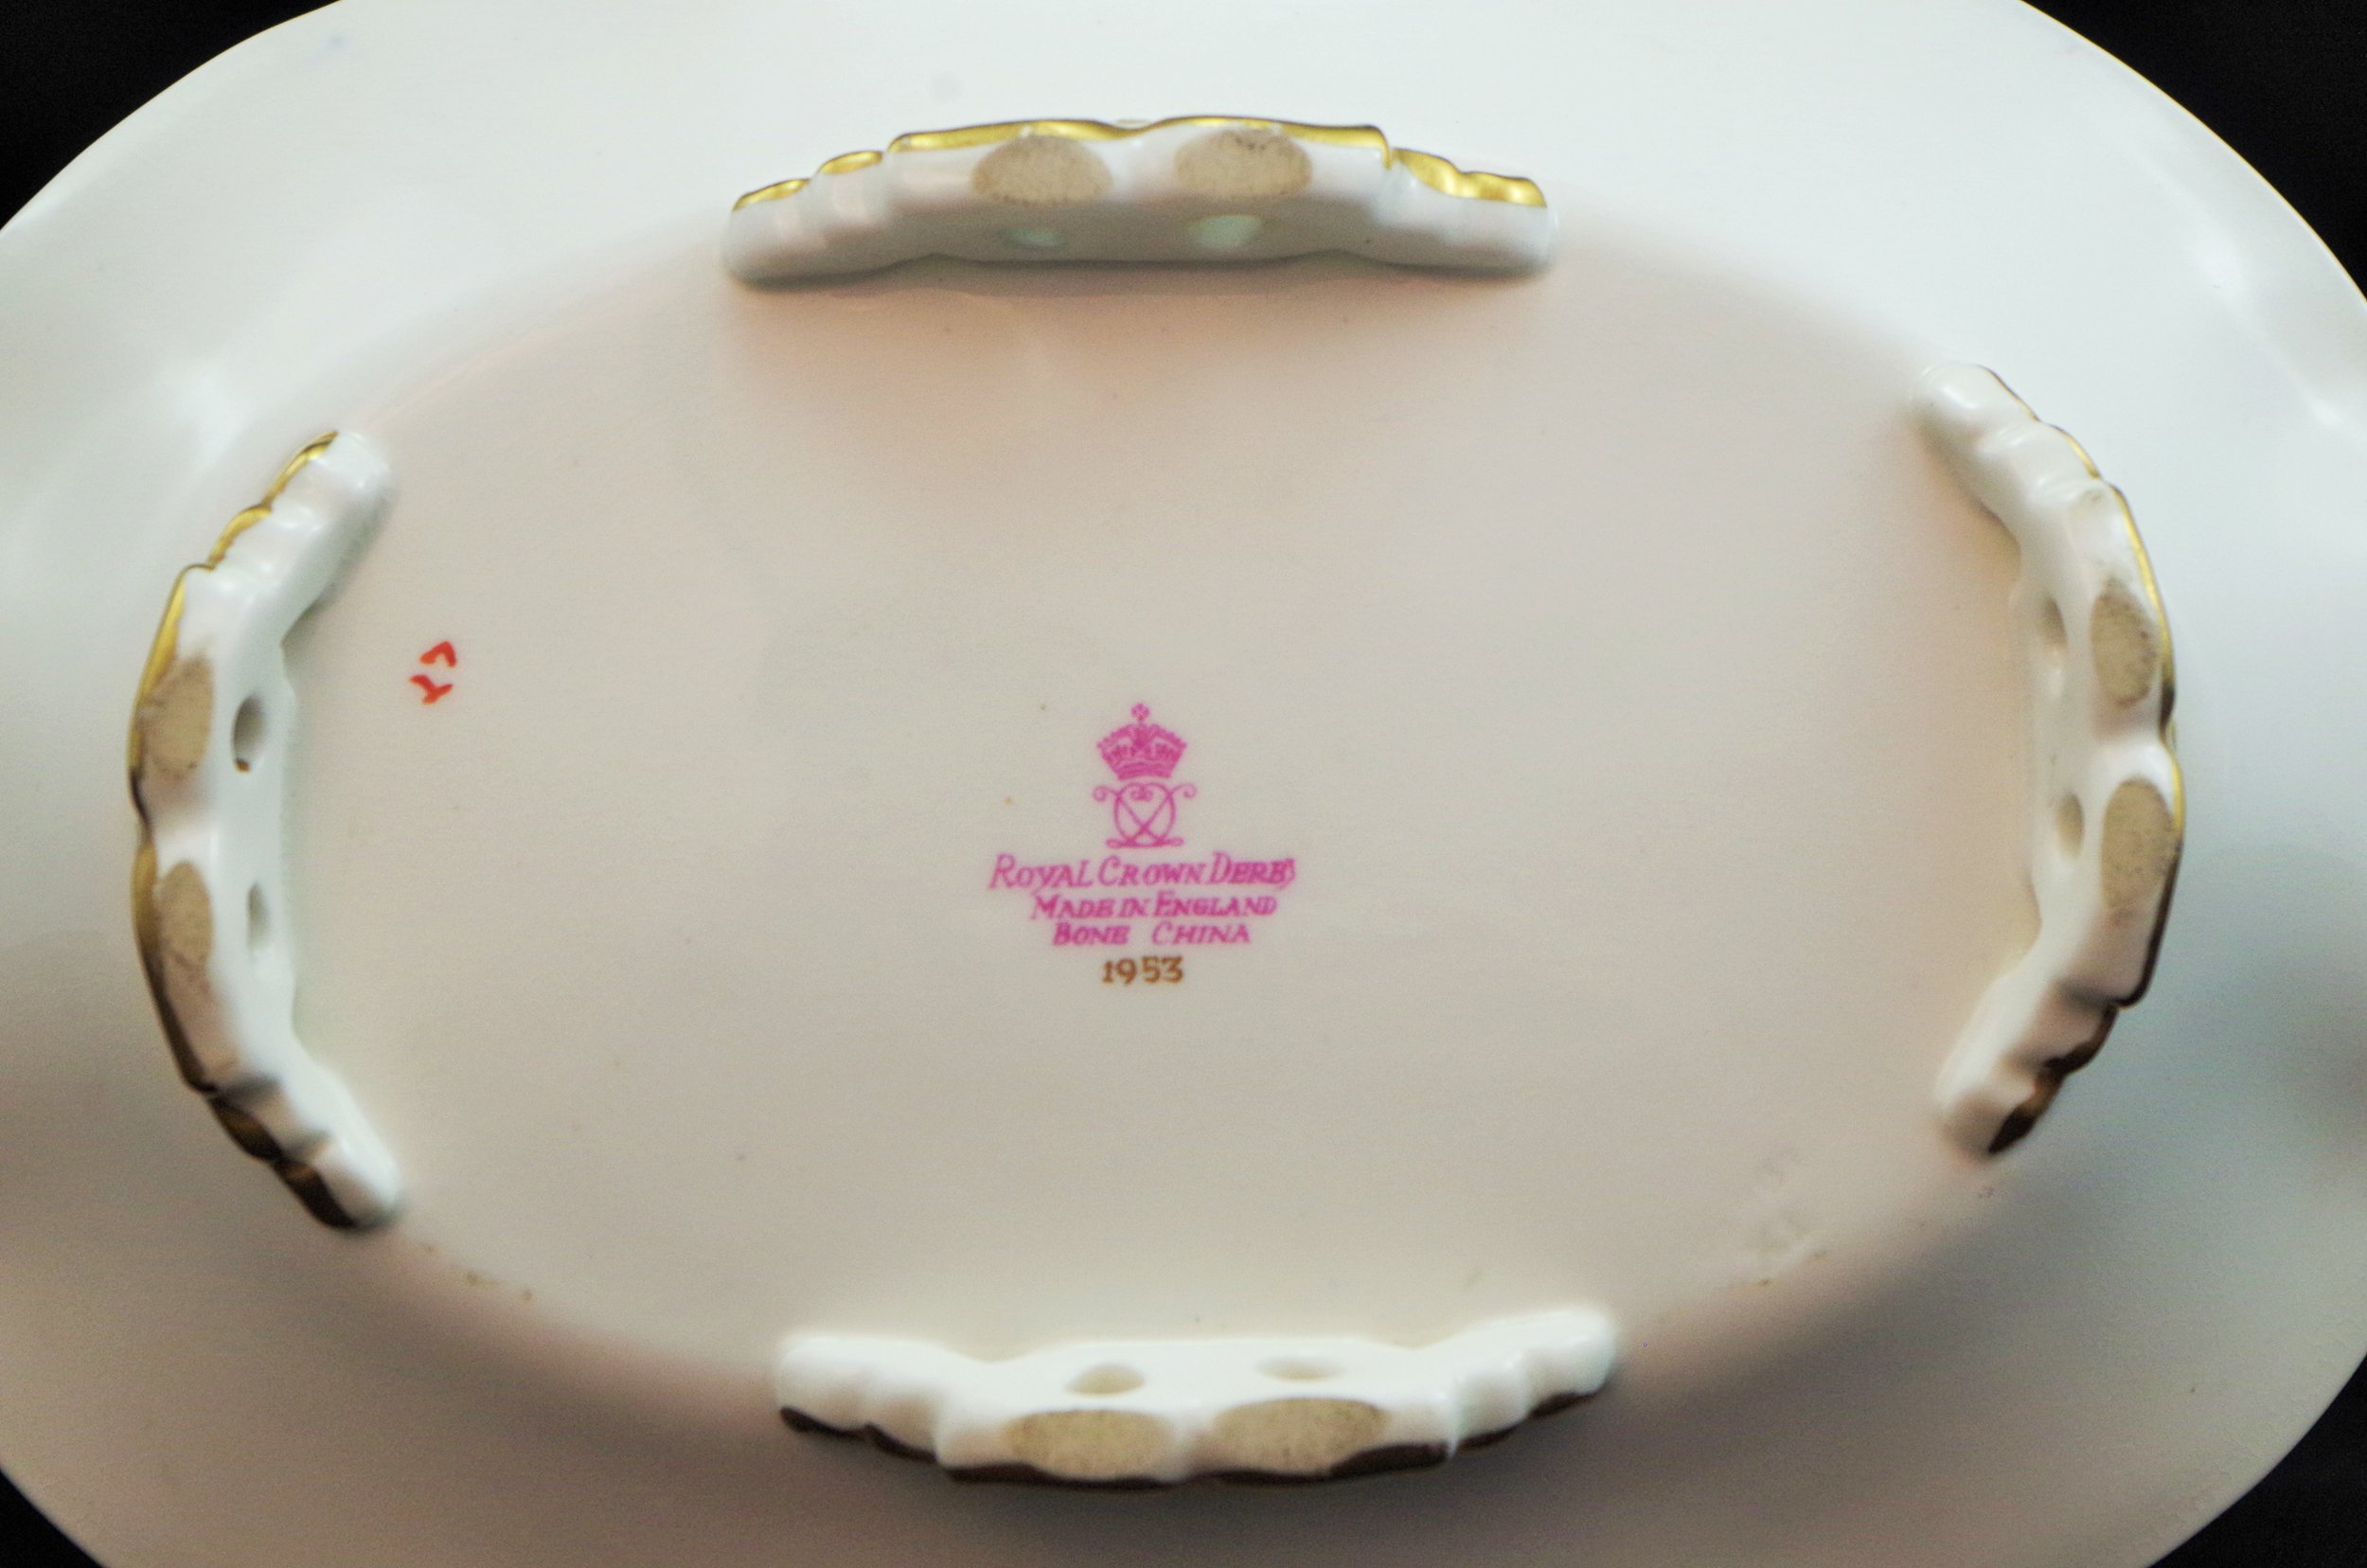 royal-crown-derby-cake-basket-1685-oval-the-worshipful-company-of-grocers-A1043-mark